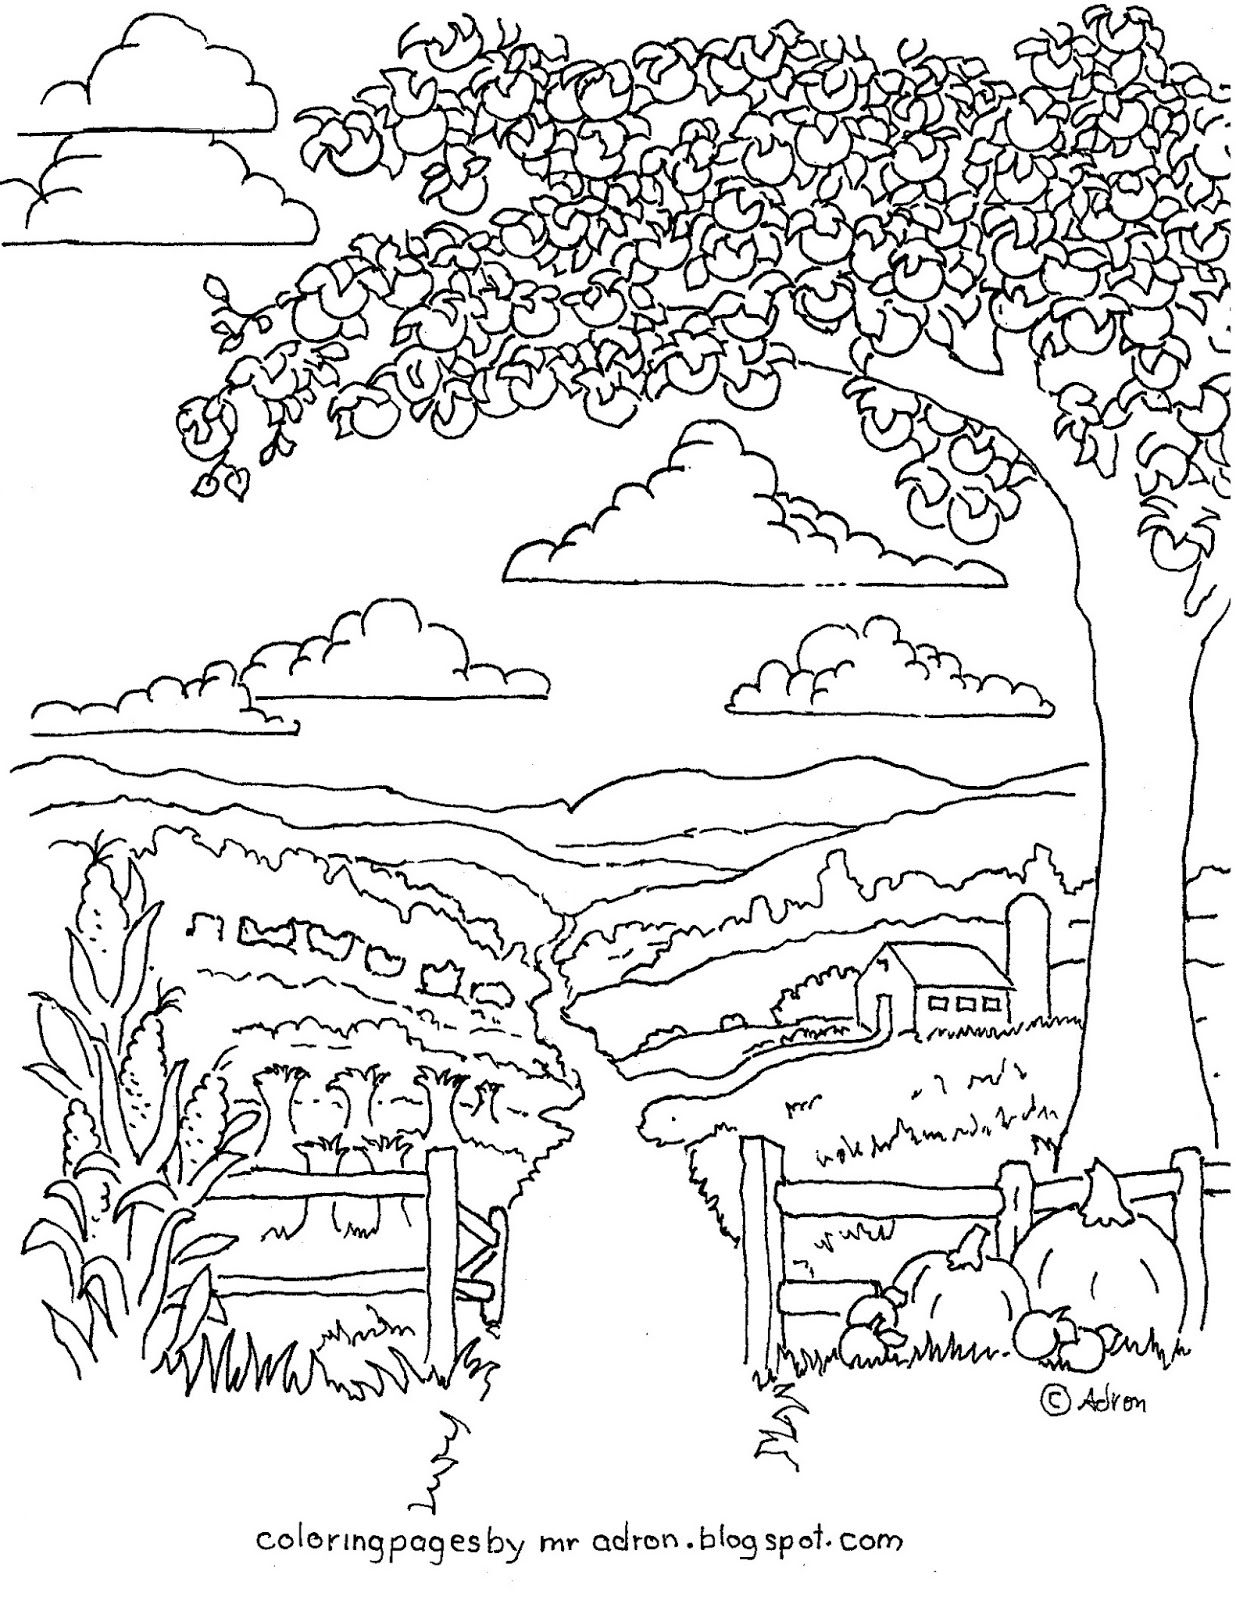 Printable Autumn Harvest Coloring Picture With Farm And